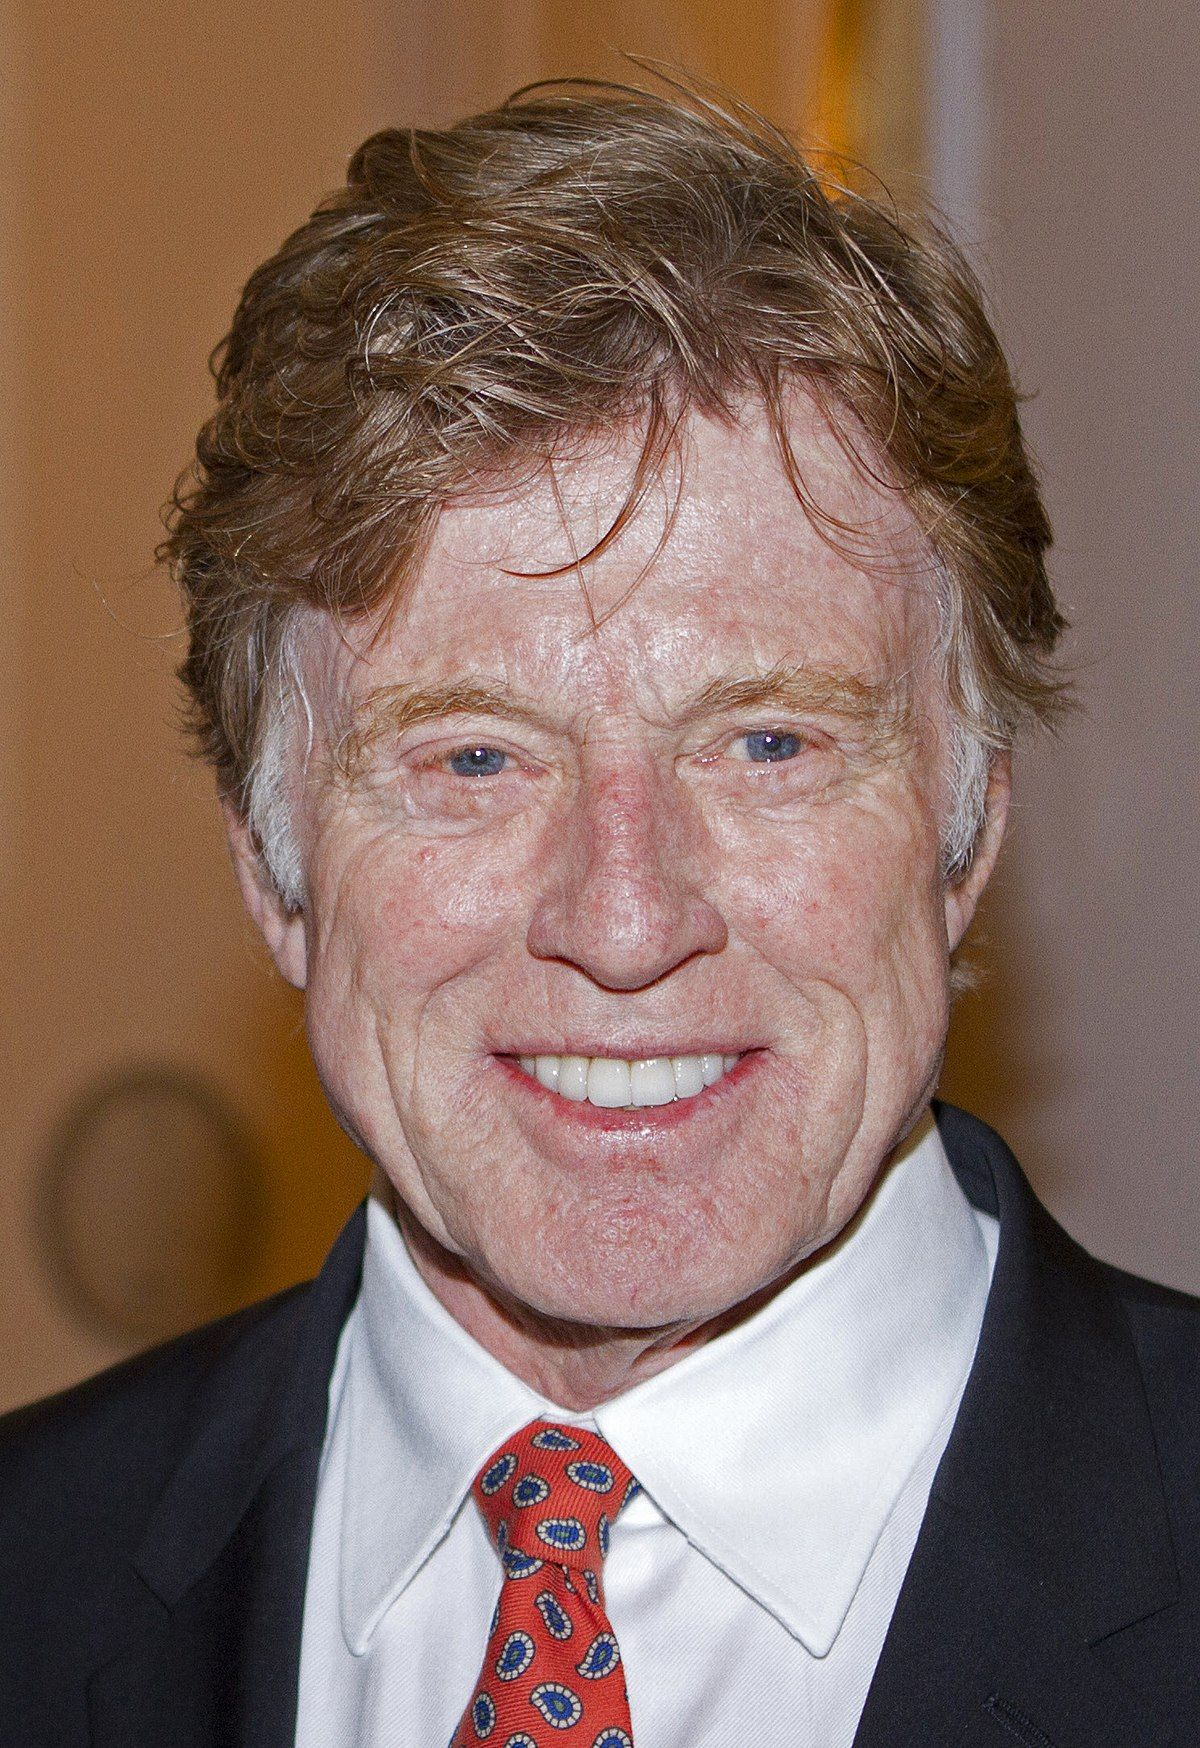 Robert Redford Wikipedia With Images Robert Redford